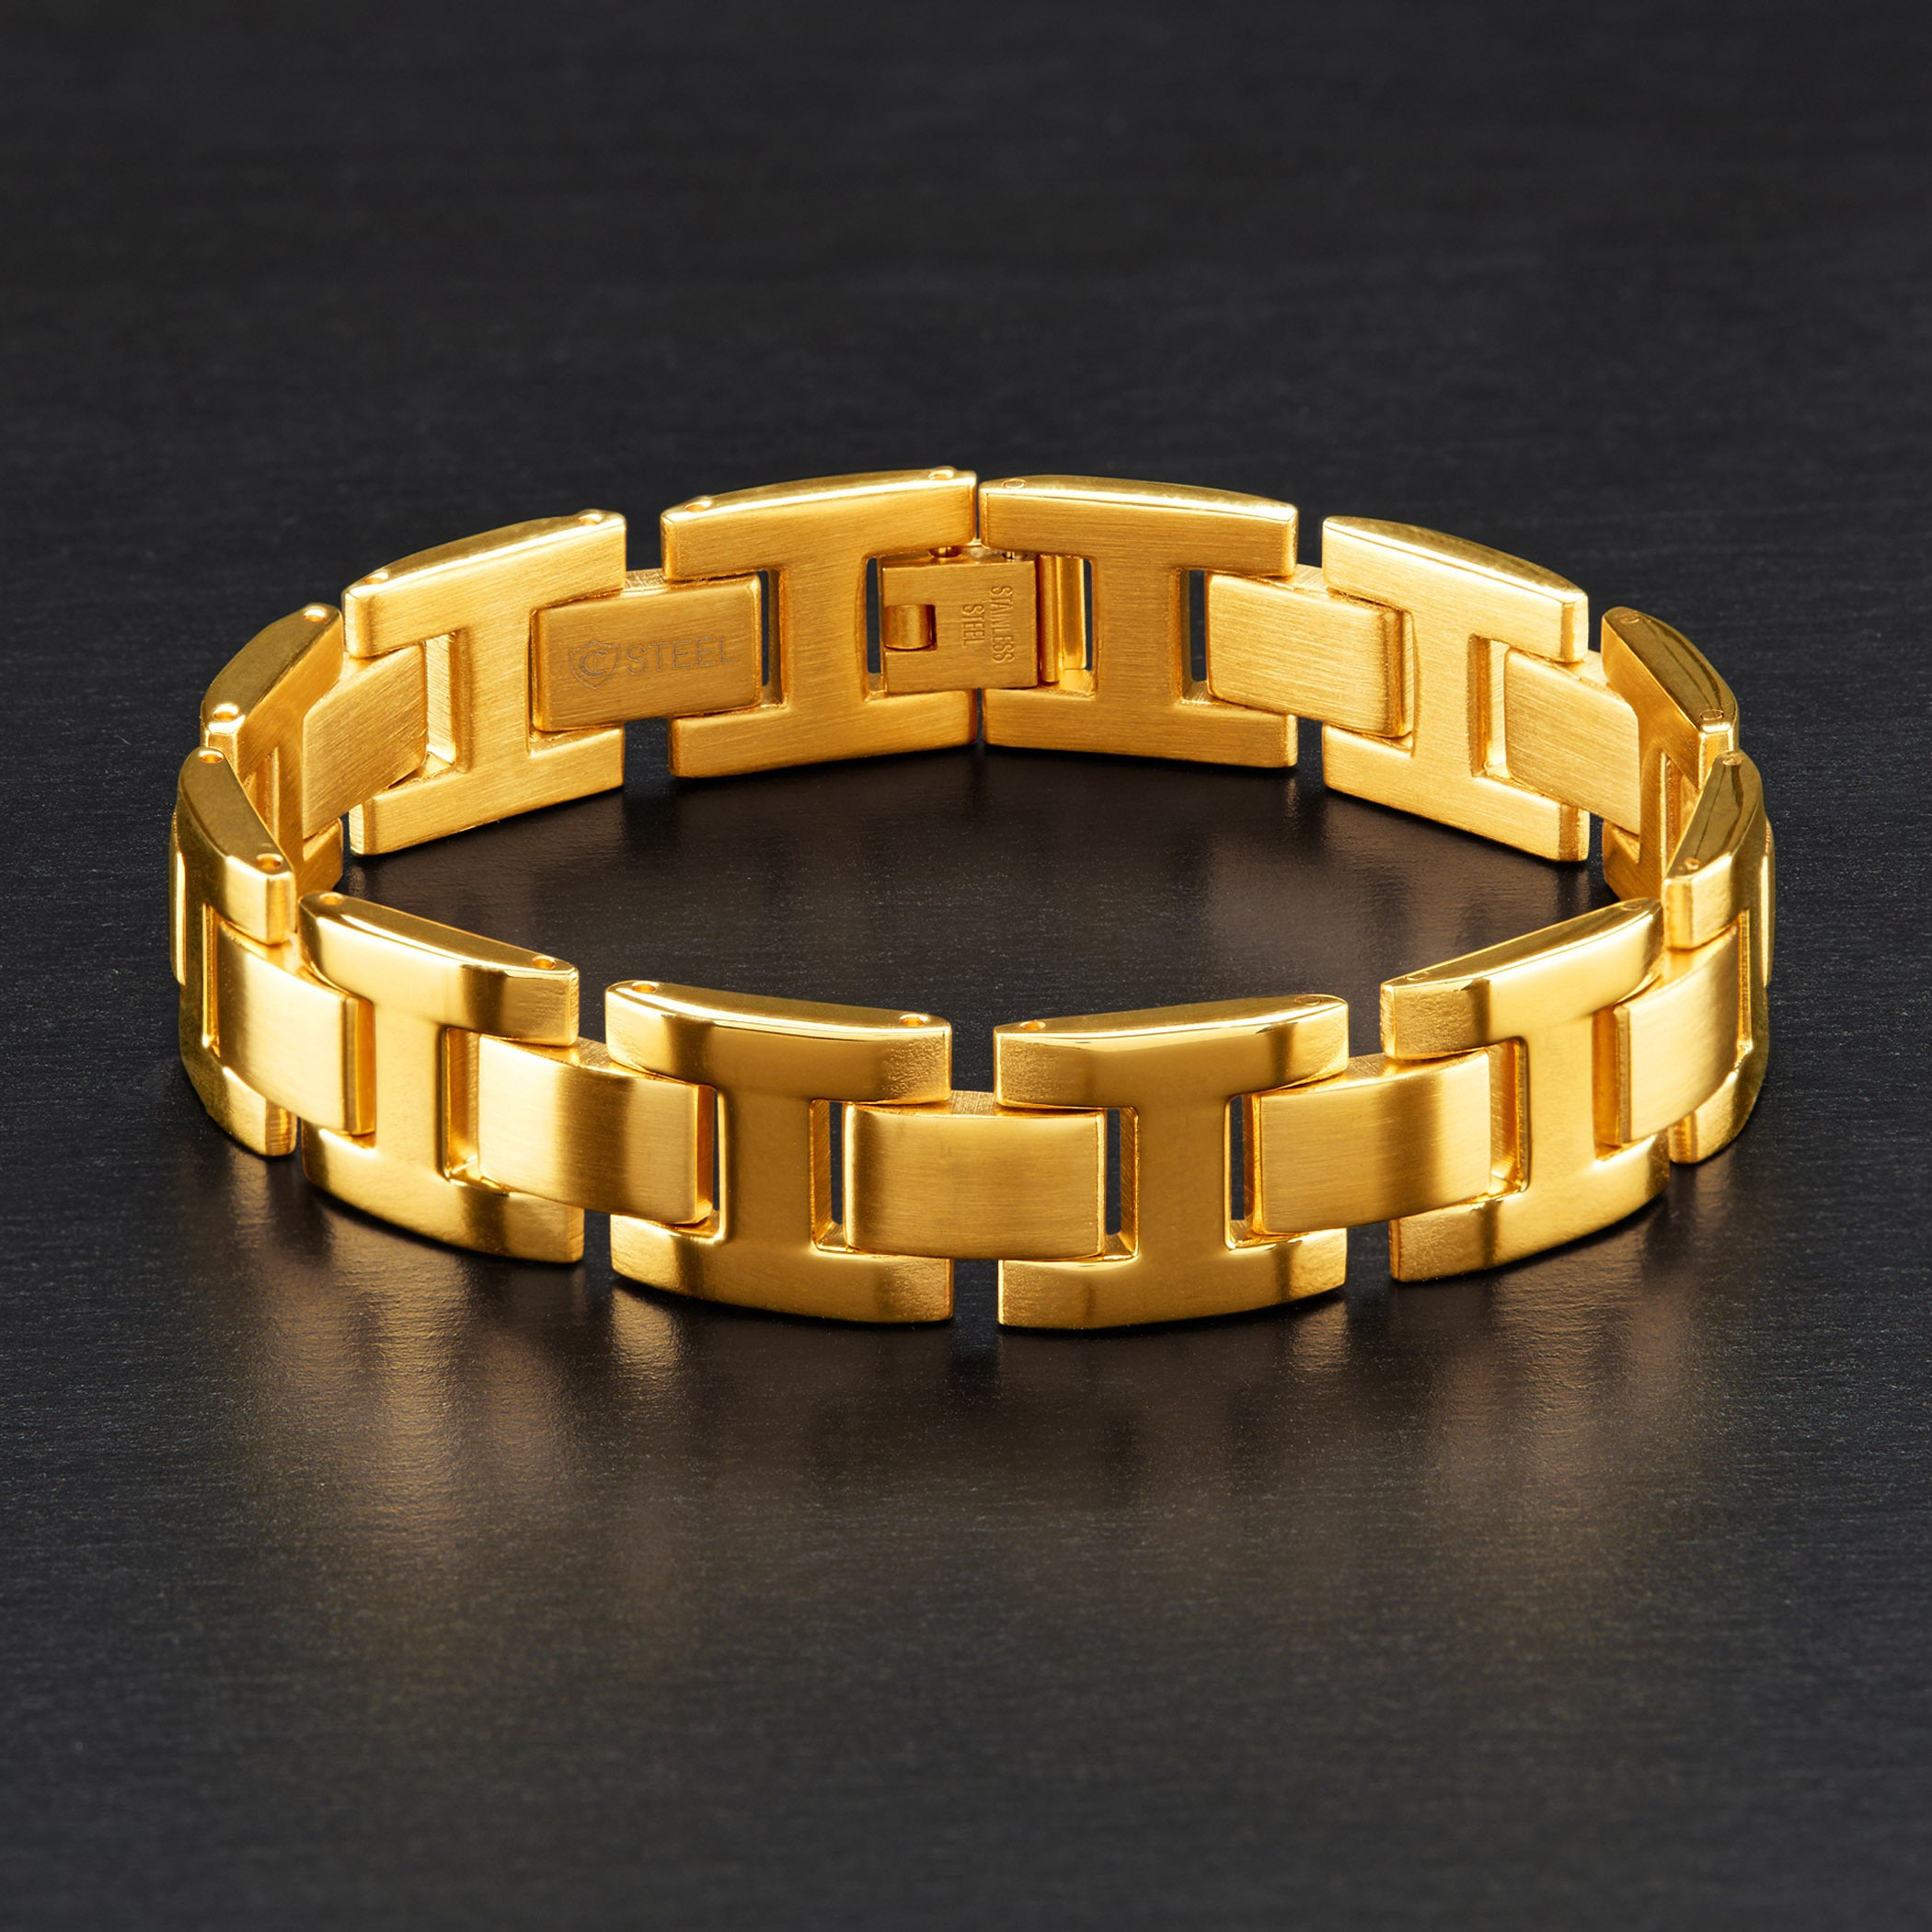 tapered metallic in cuff product ben gold jewelry amun gallery lyst bracelet wide